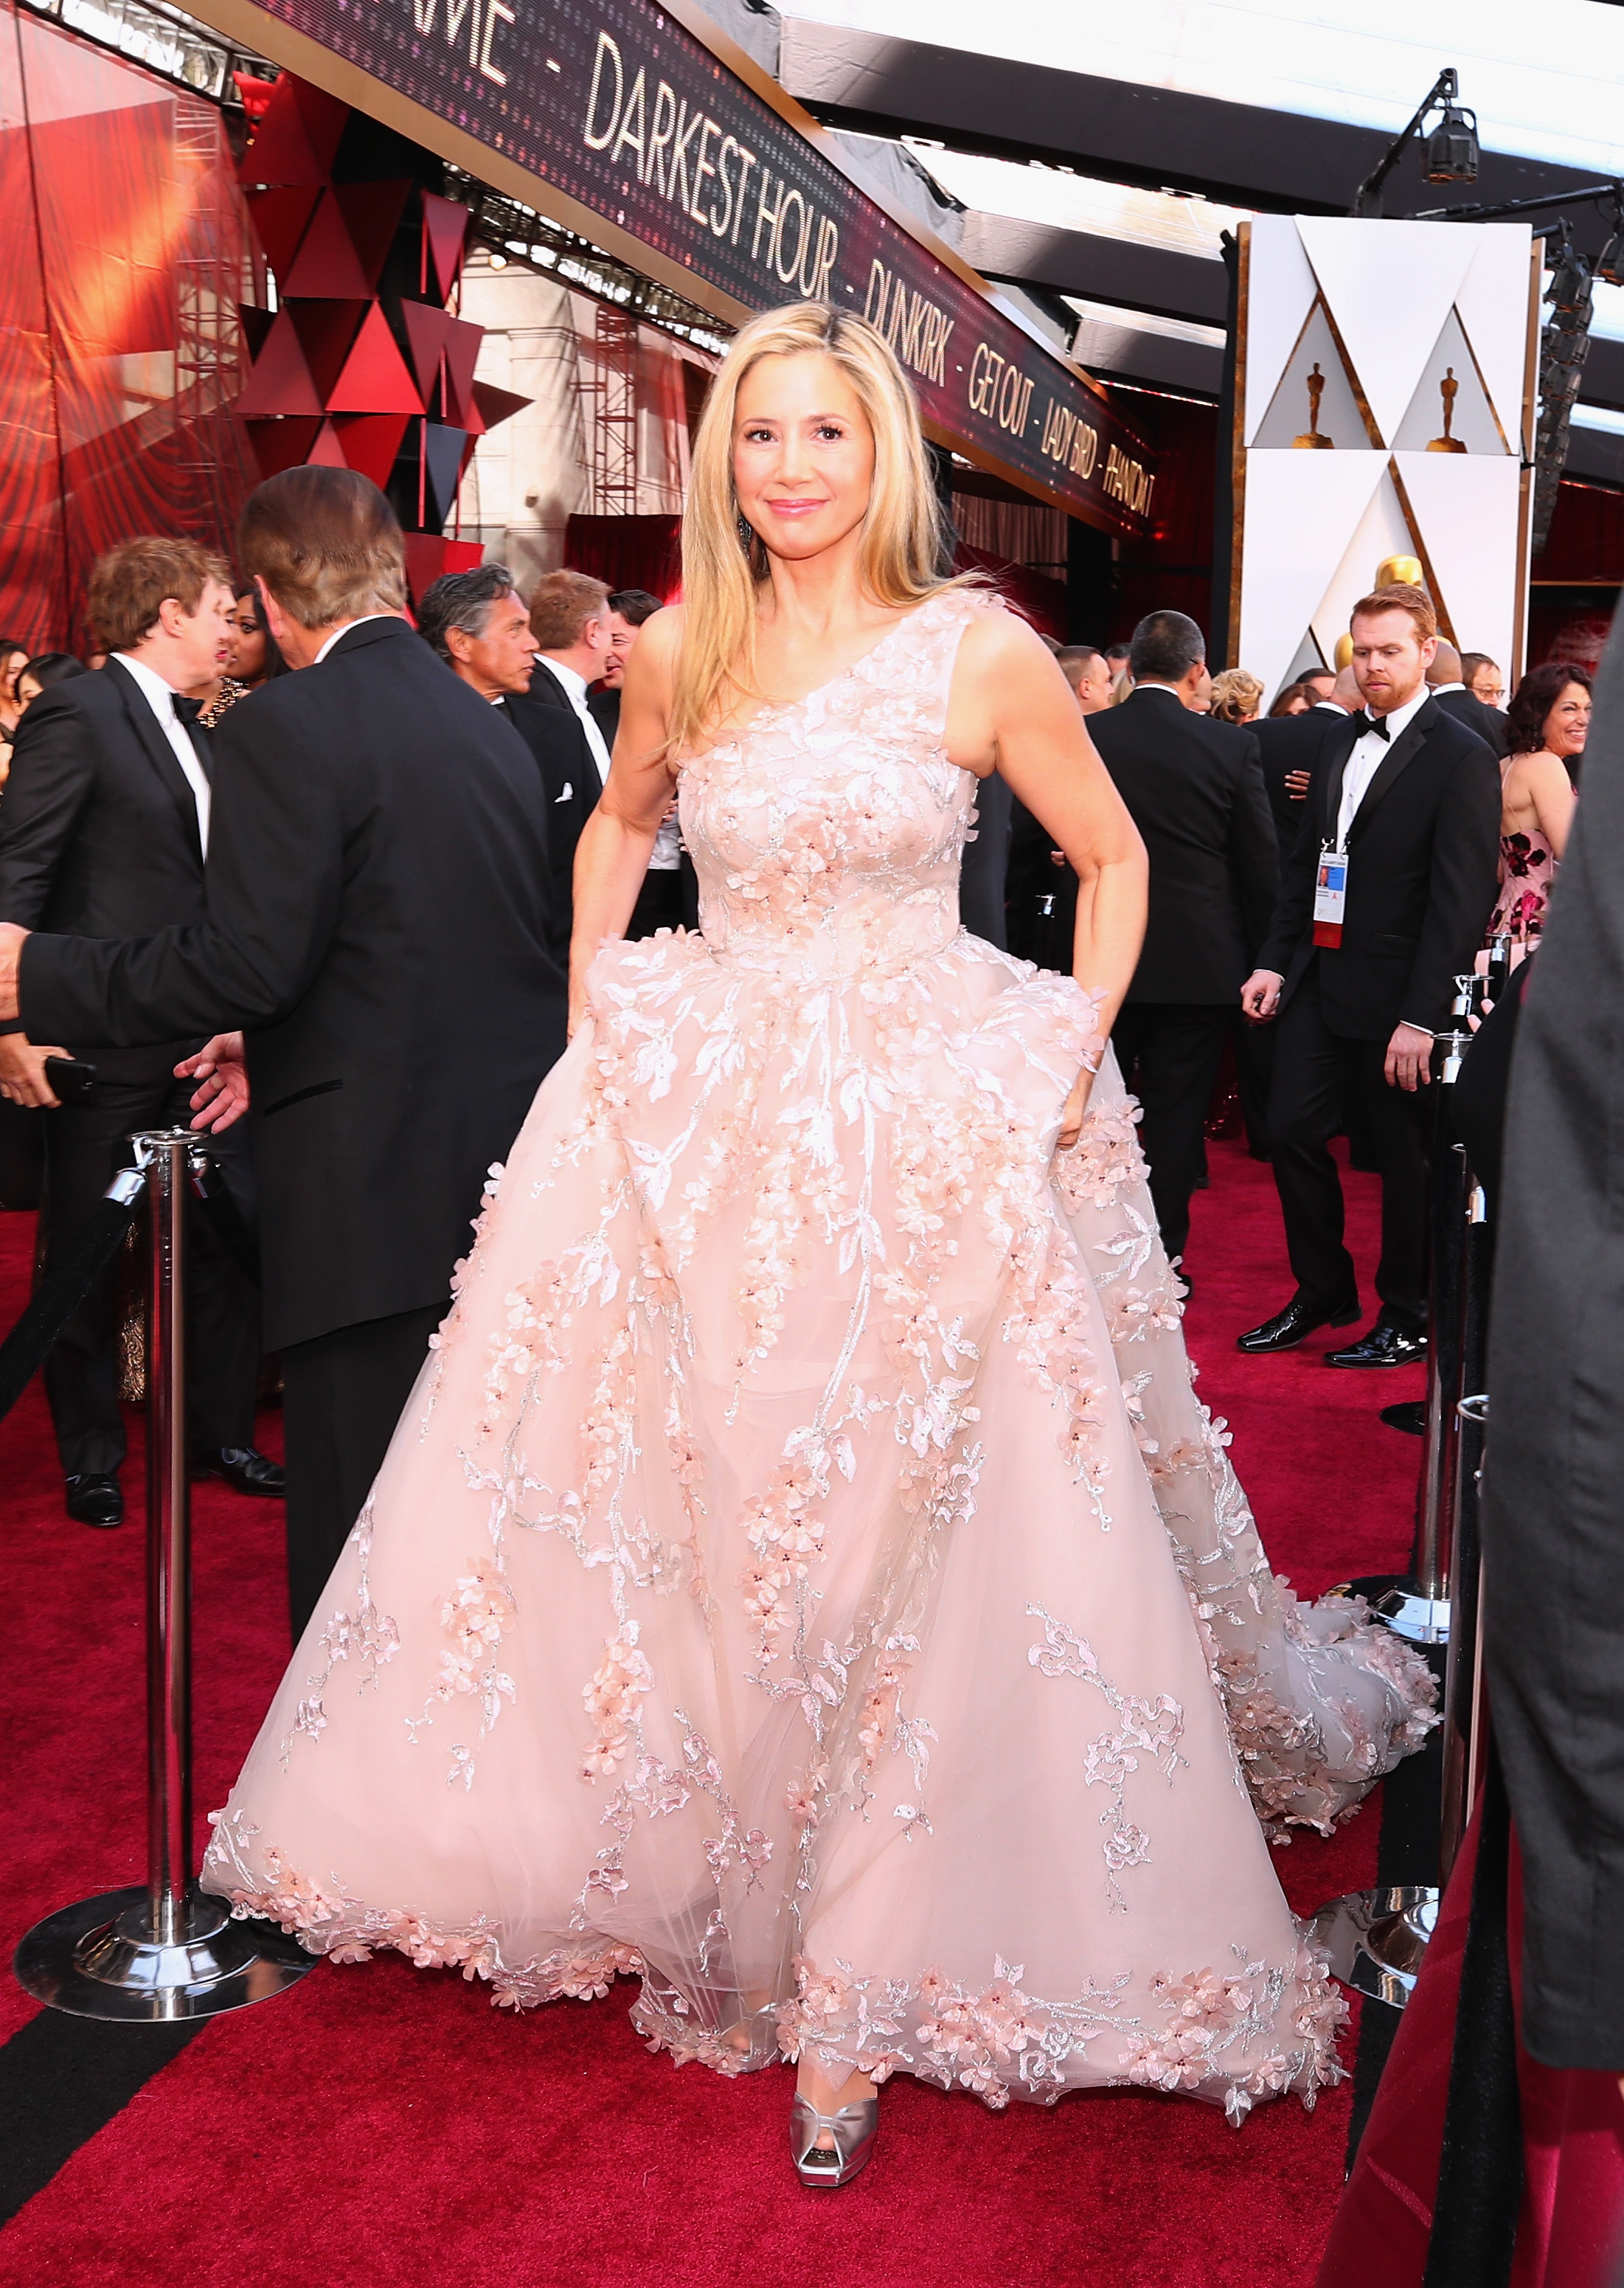 HOLLYWOOD, CA - MARCH 04:  Mira Sorvino attends the 90th Annual Academy Awards at Hollywood & Highland Center on March 4, 2018 in Hollywood, California.  (Photo by Christopher Polk/Getty Images)